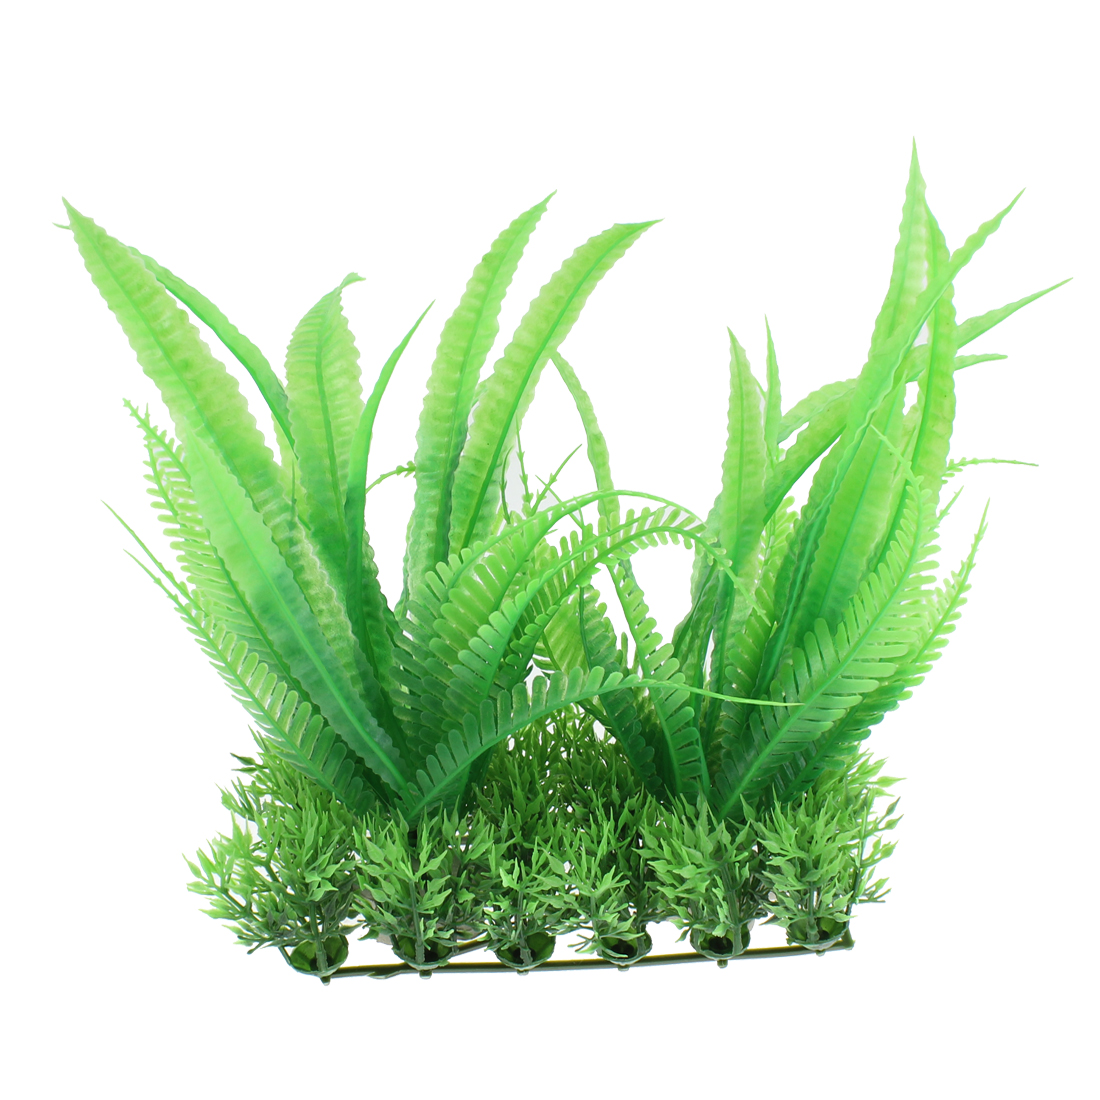 Aquarium Fishbowl Simulation Underwater Plant Grass Ornament 22 x 17cm